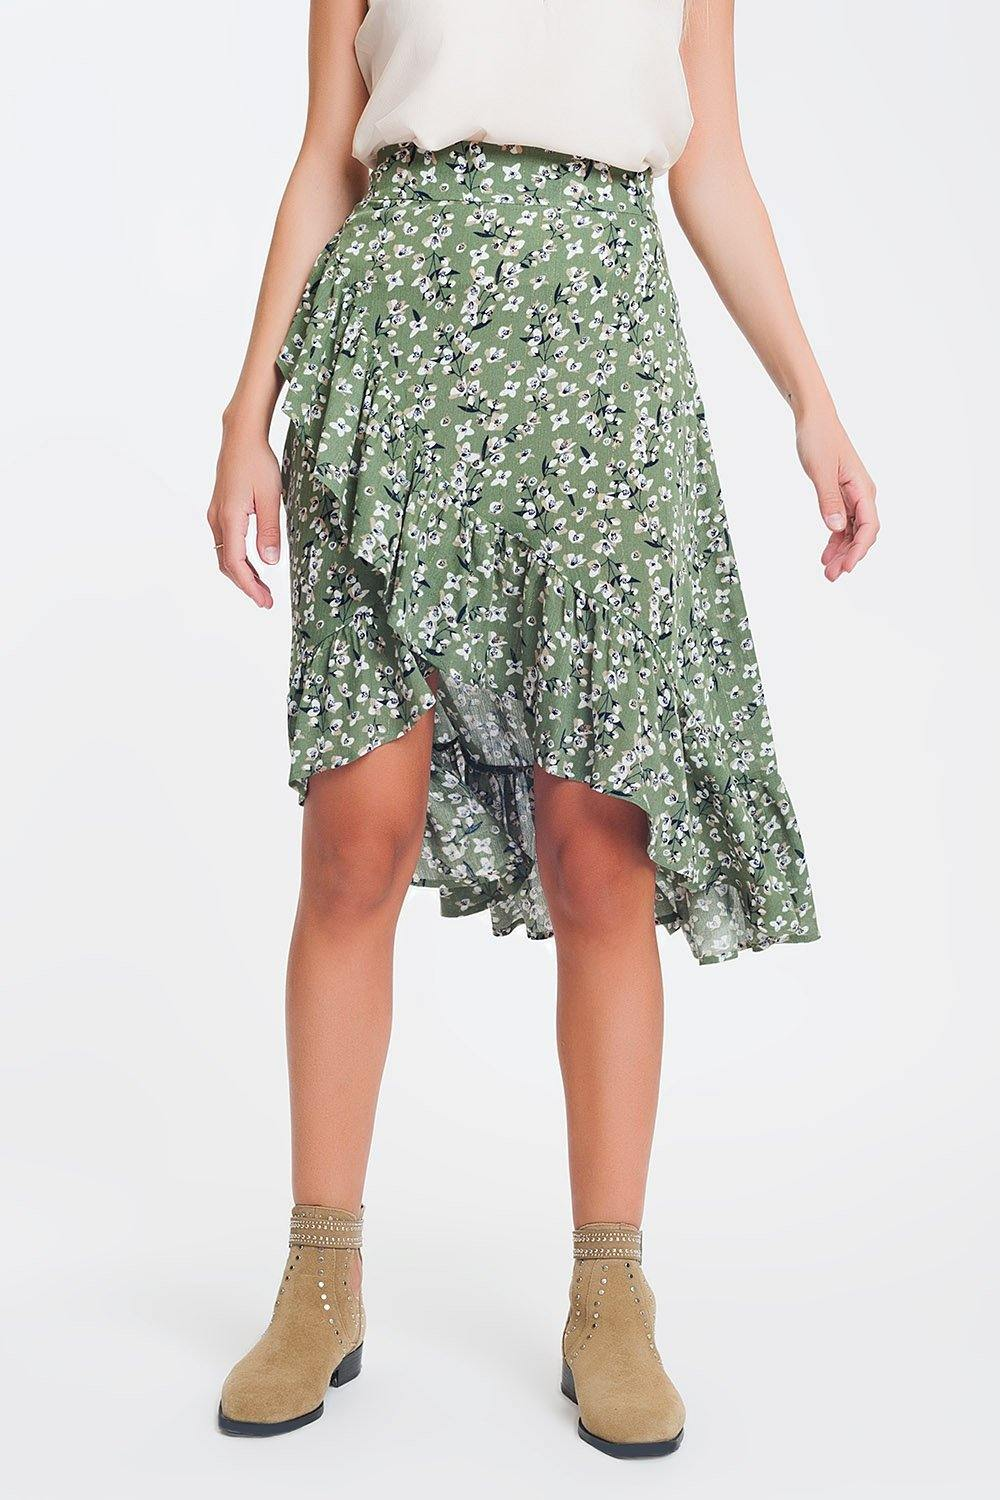 Q2 asymmetric wrap printed green skirt